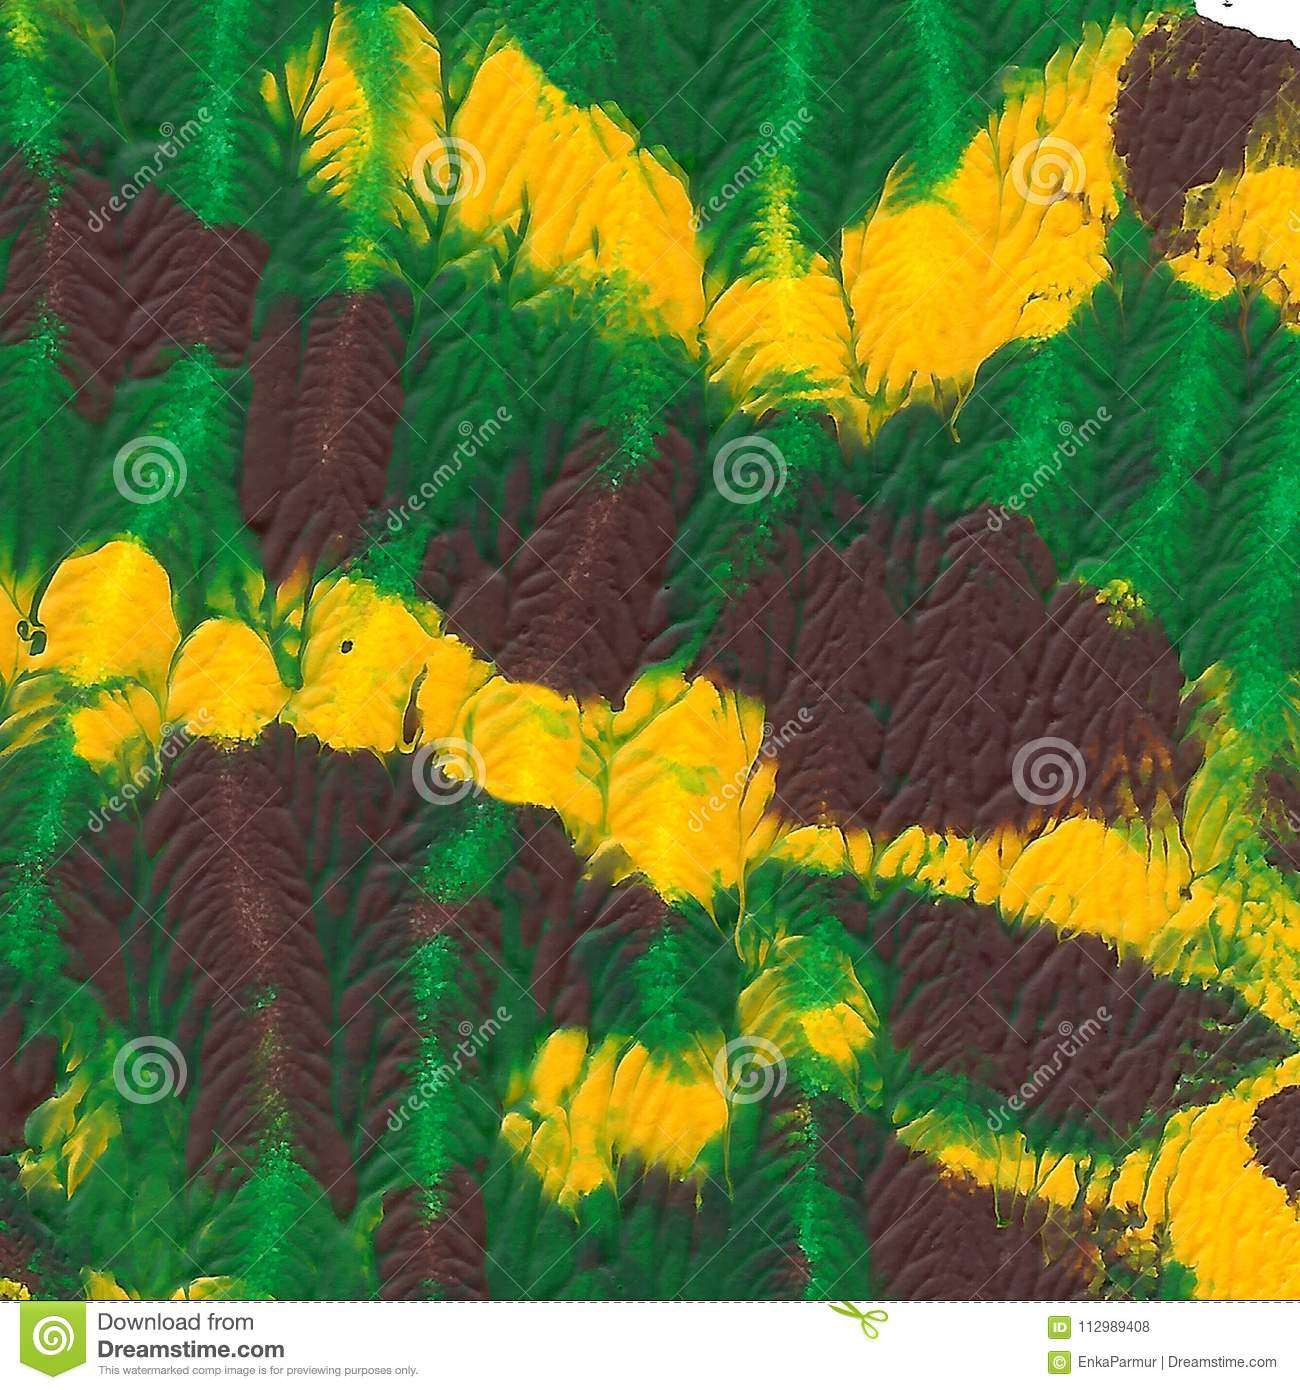 Abstract acrylic painted background. Green, brown, yellow textured vibrant color. Grunge template for your design.